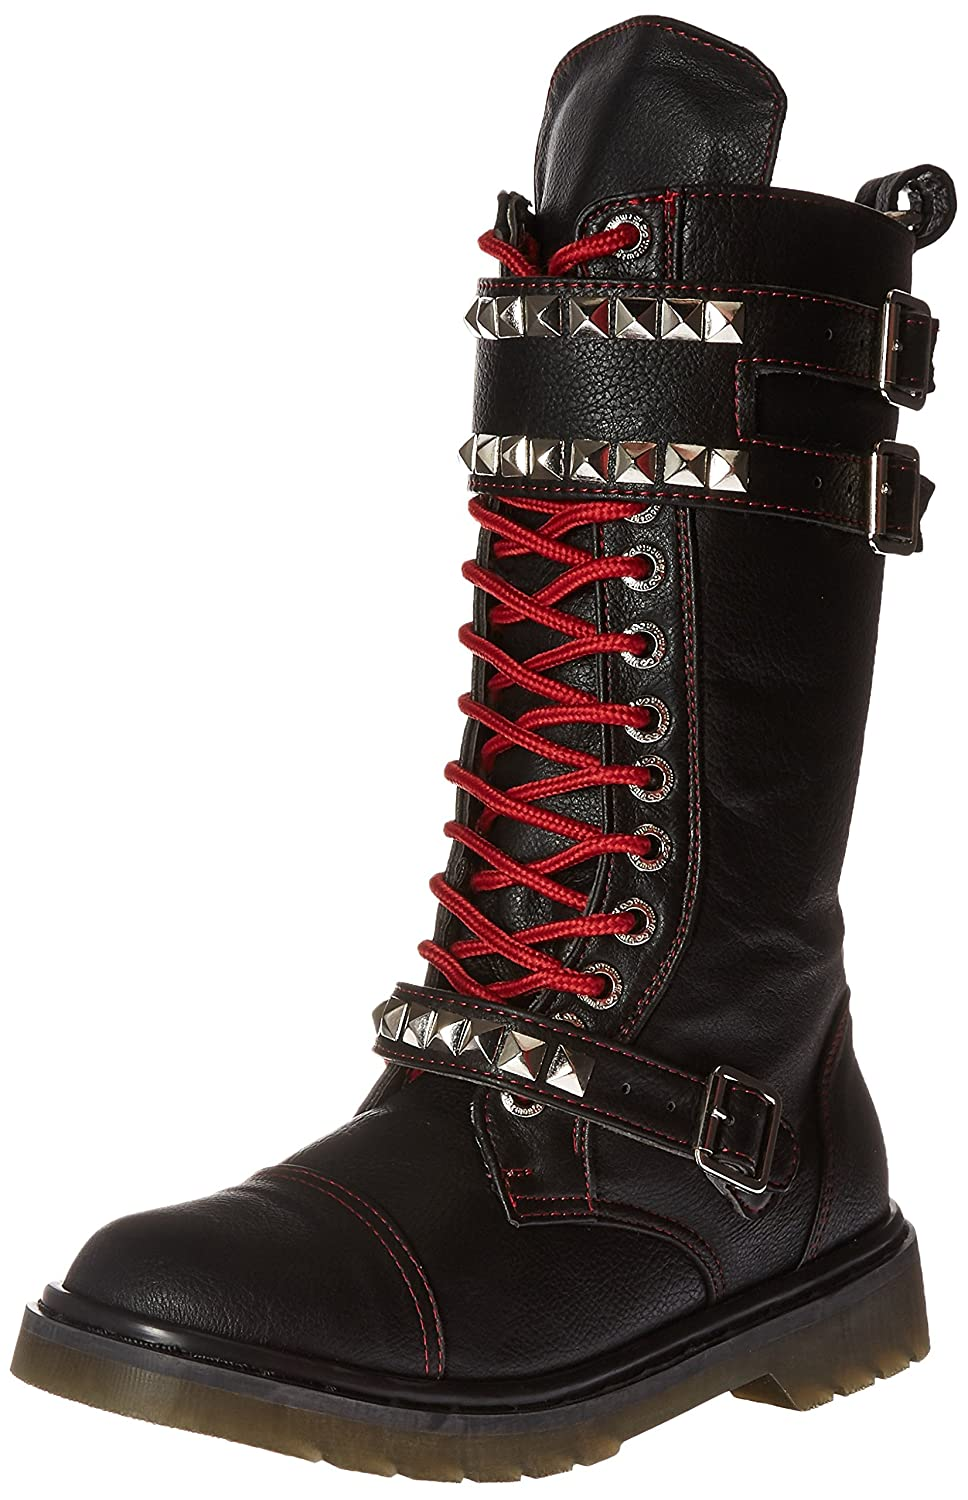 Demonia Women's Riv315/bpu Boot B0193A4JGS 11 B(M) US|Black Vegan Leather